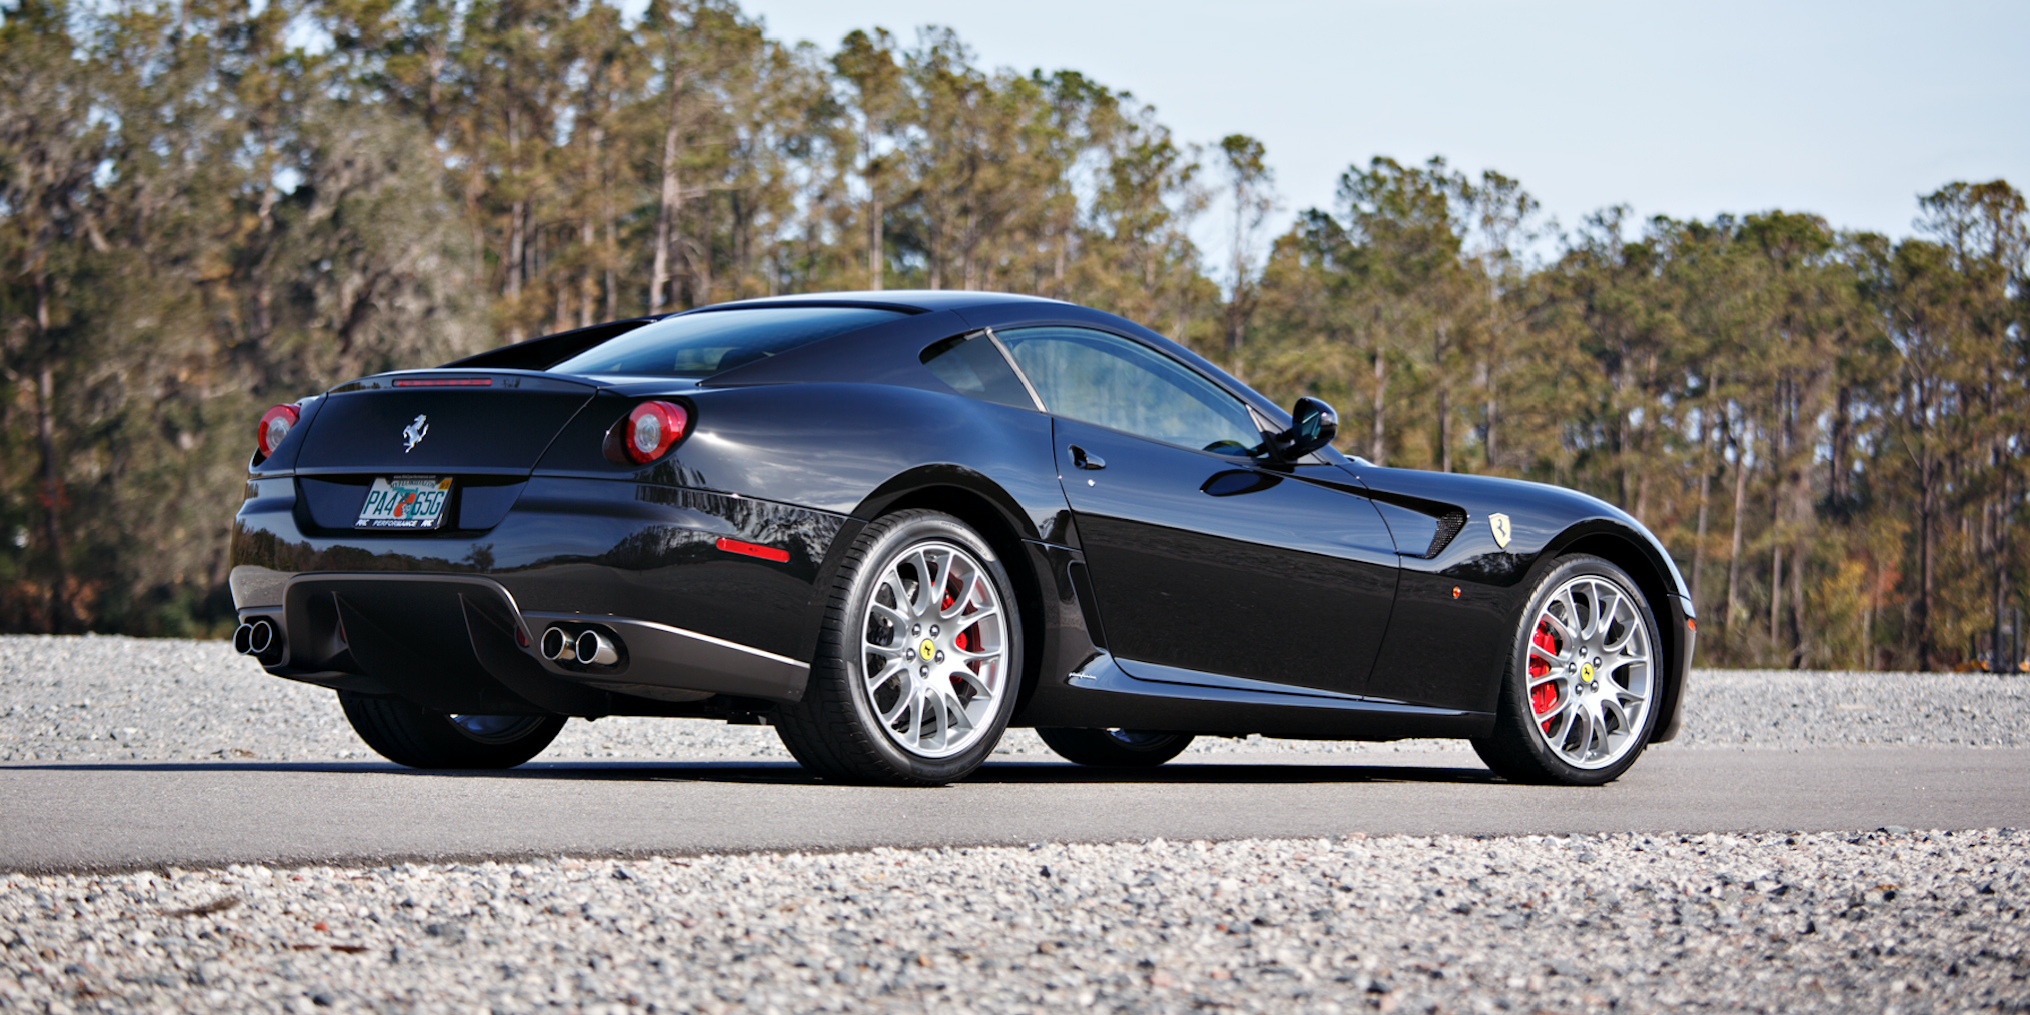 This Ultra Rare Six Speed Ferrari 599 Gtb Fiorano Was Once Owned By Cj Wilson